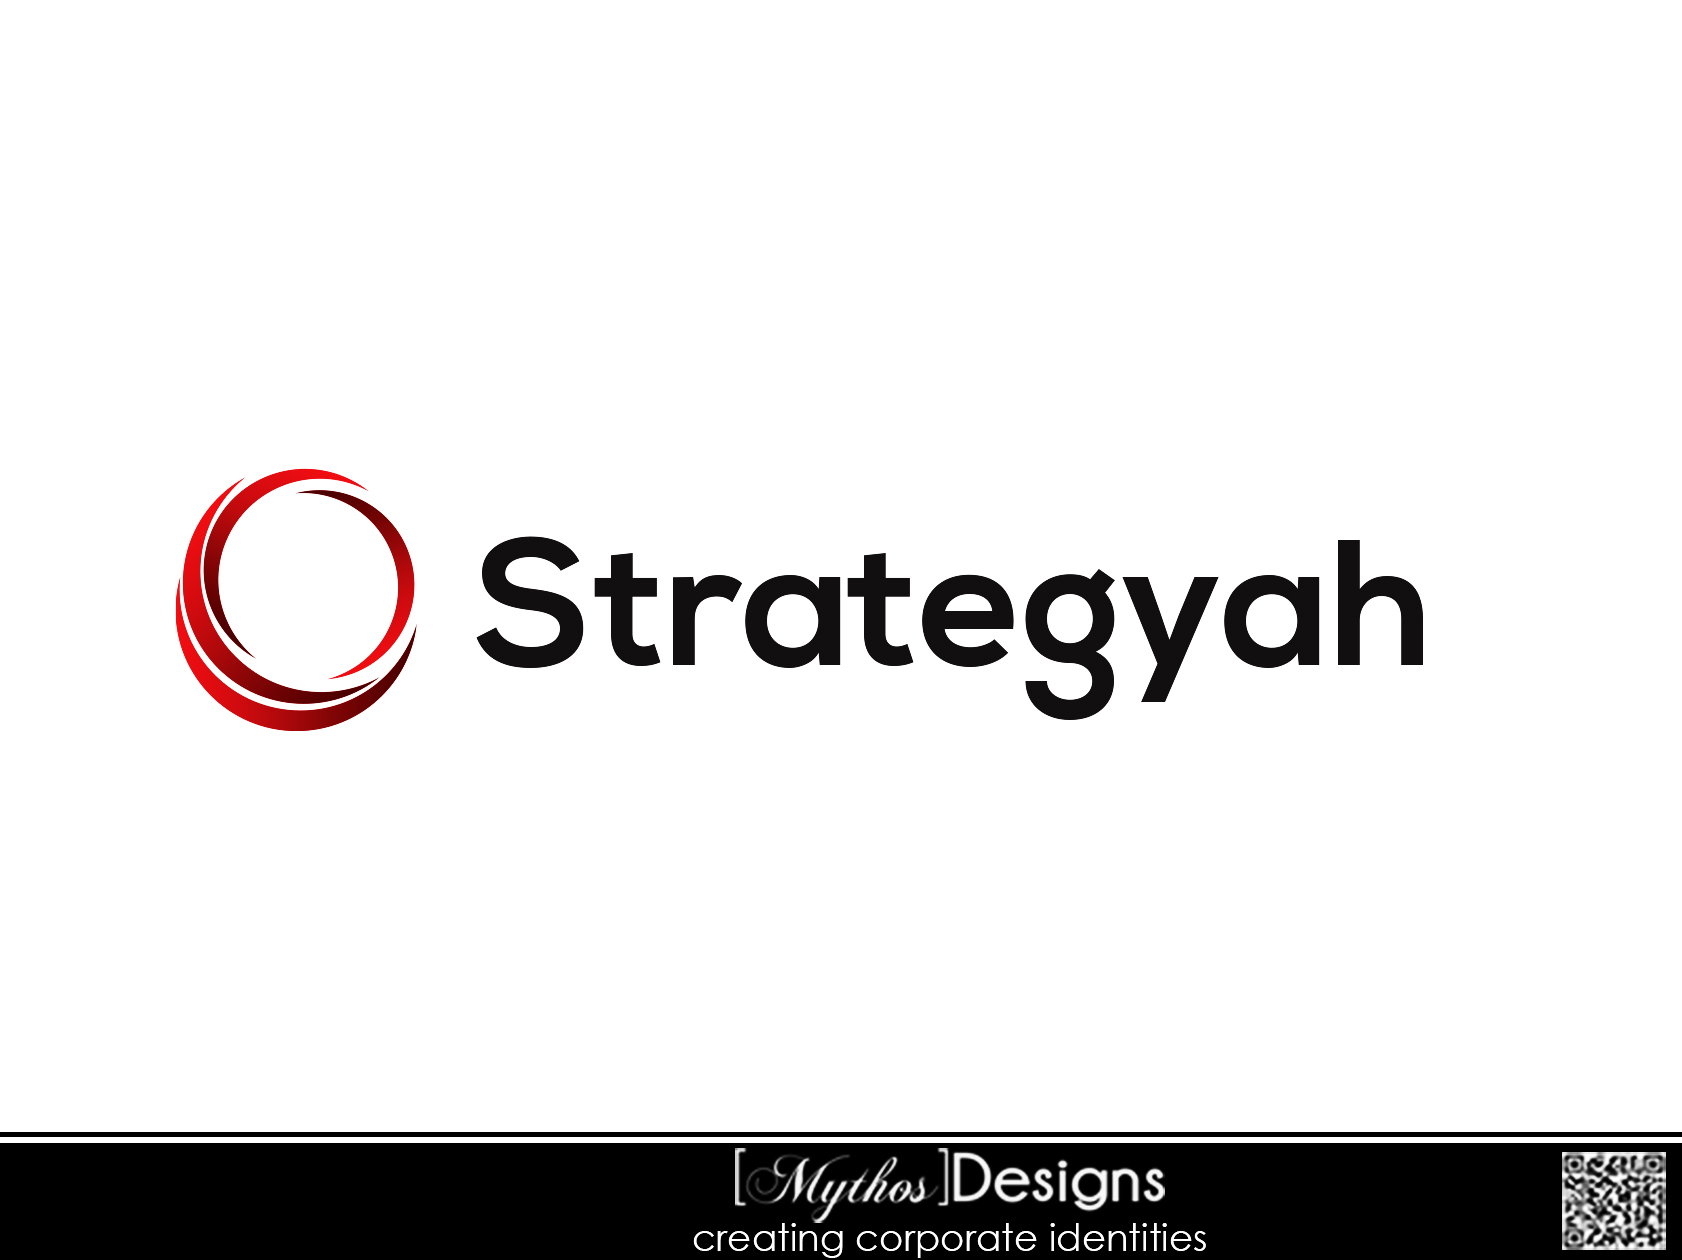 Logo Design by Mythos Designs - Entry No. 98 in the Logo Design Contest Creative Logo Design for Strategyah.